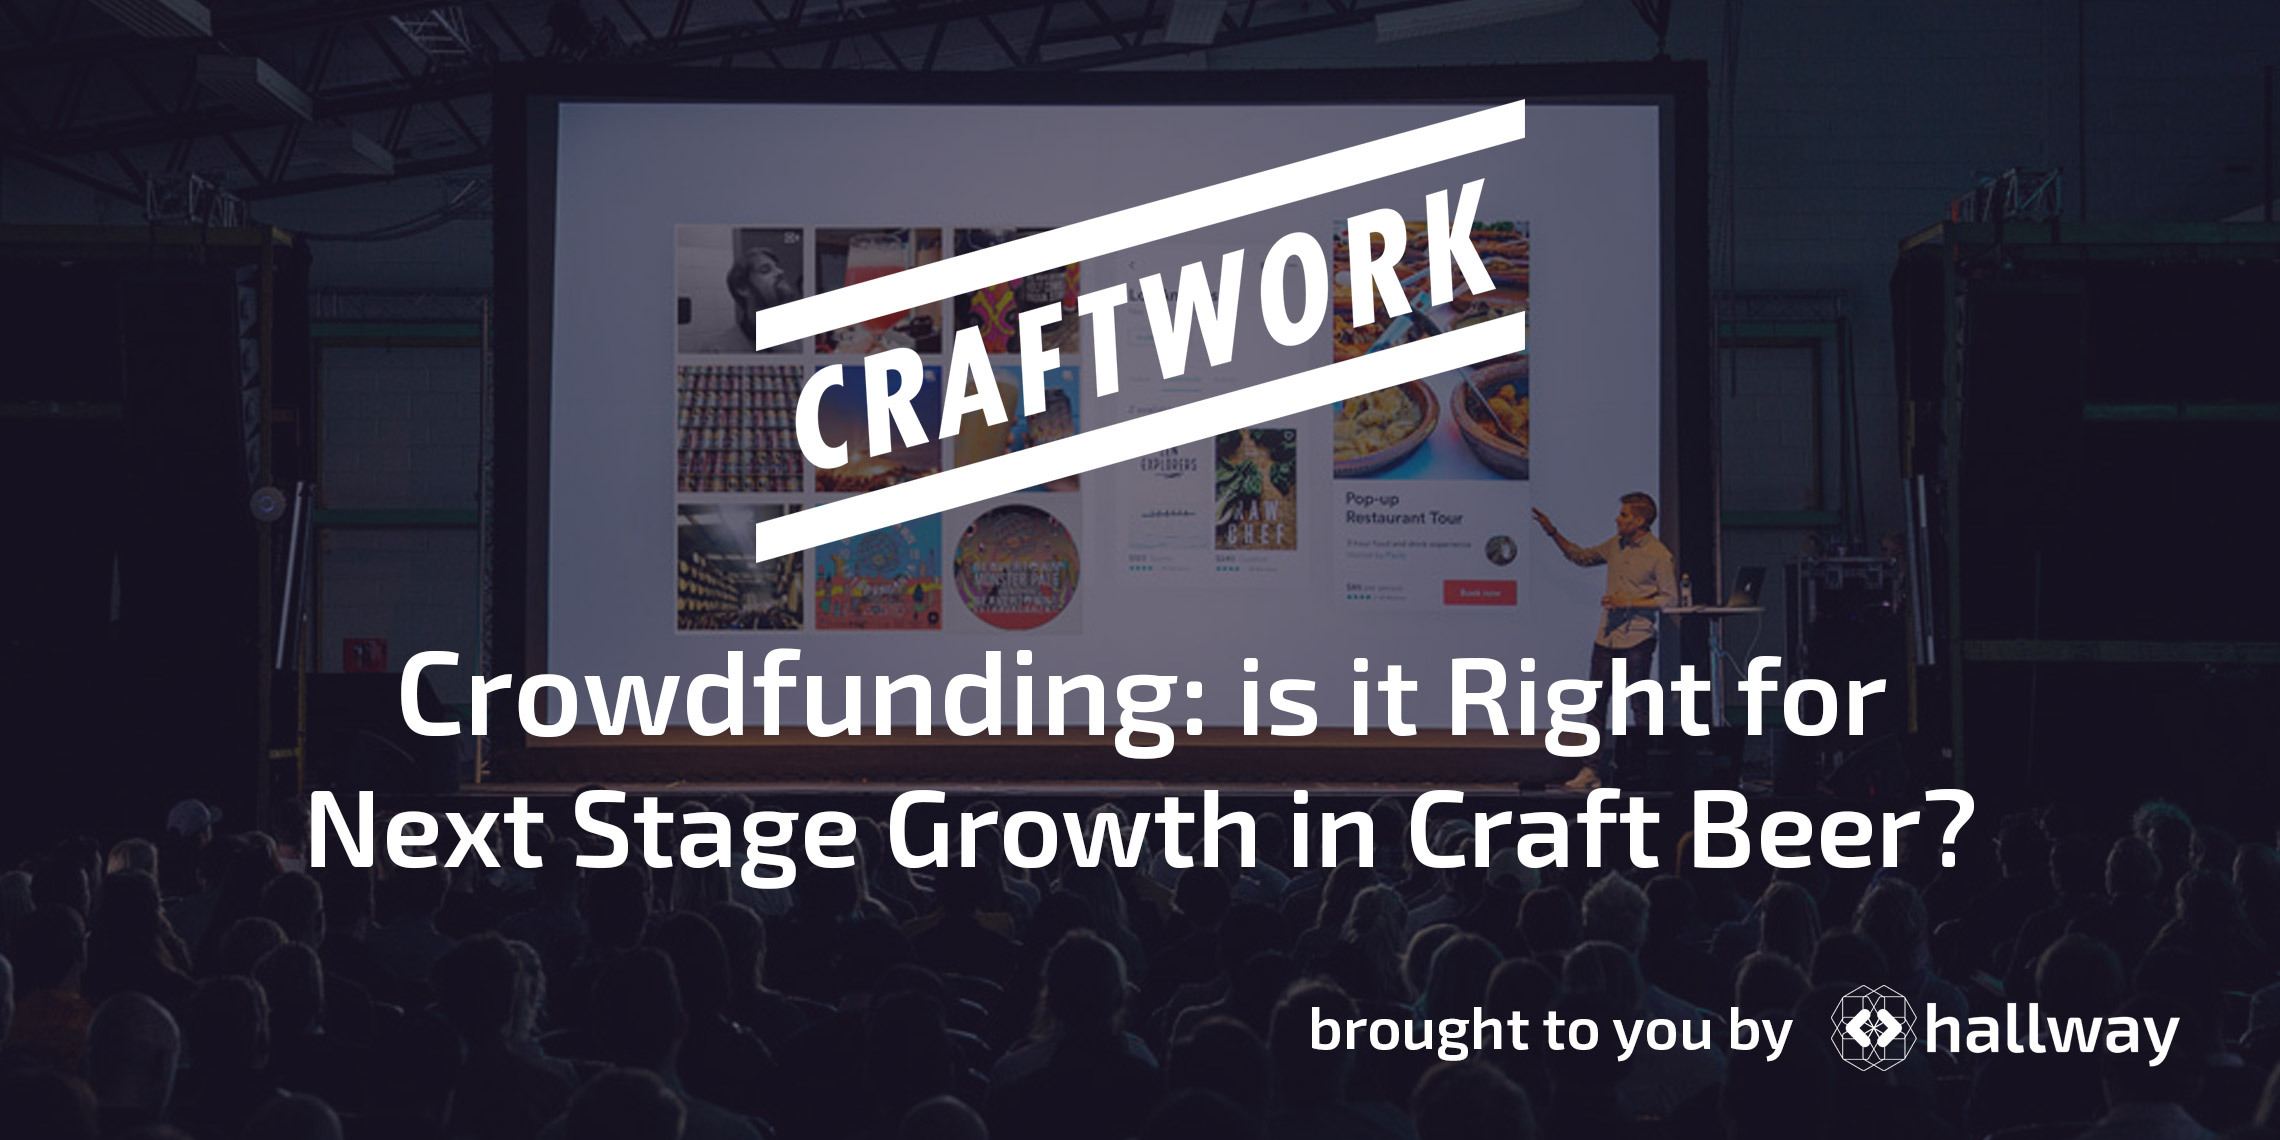 Crowdfunding: Is it Right for Next Stage Growth in Craft Beer?